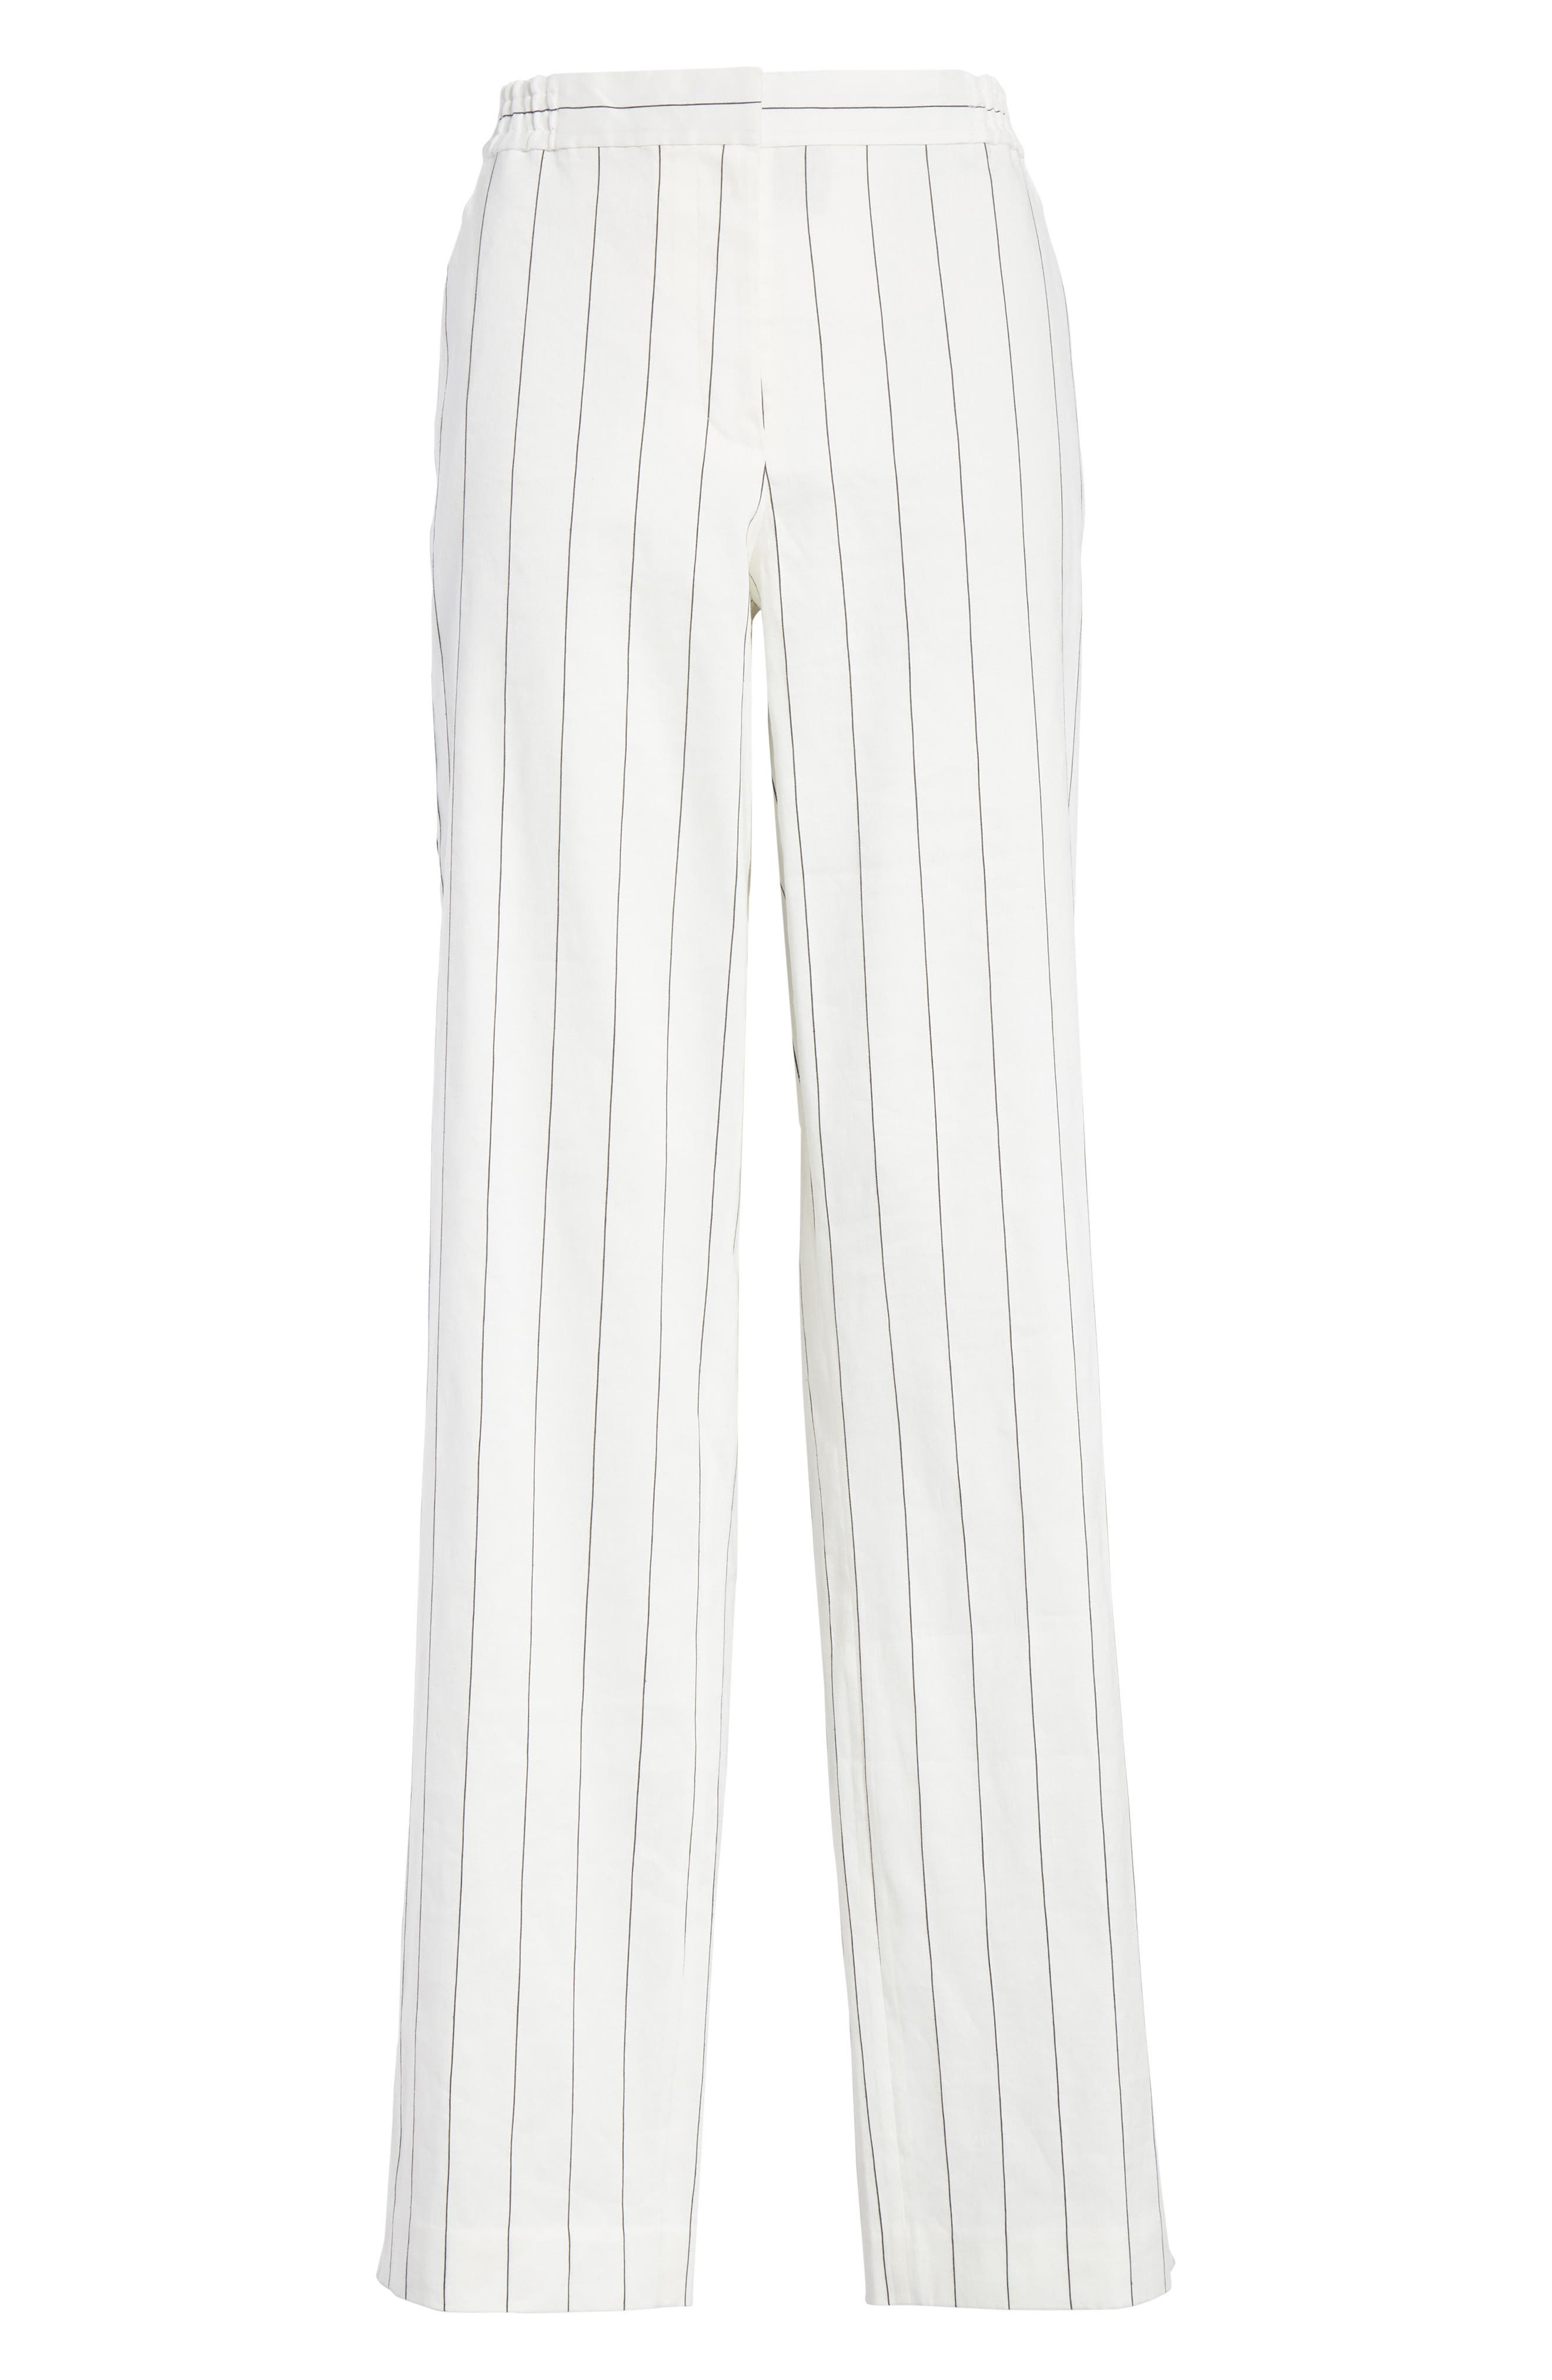 Snap Side Stripe Pants,                             Alternate thumbnail 6, color,                             907